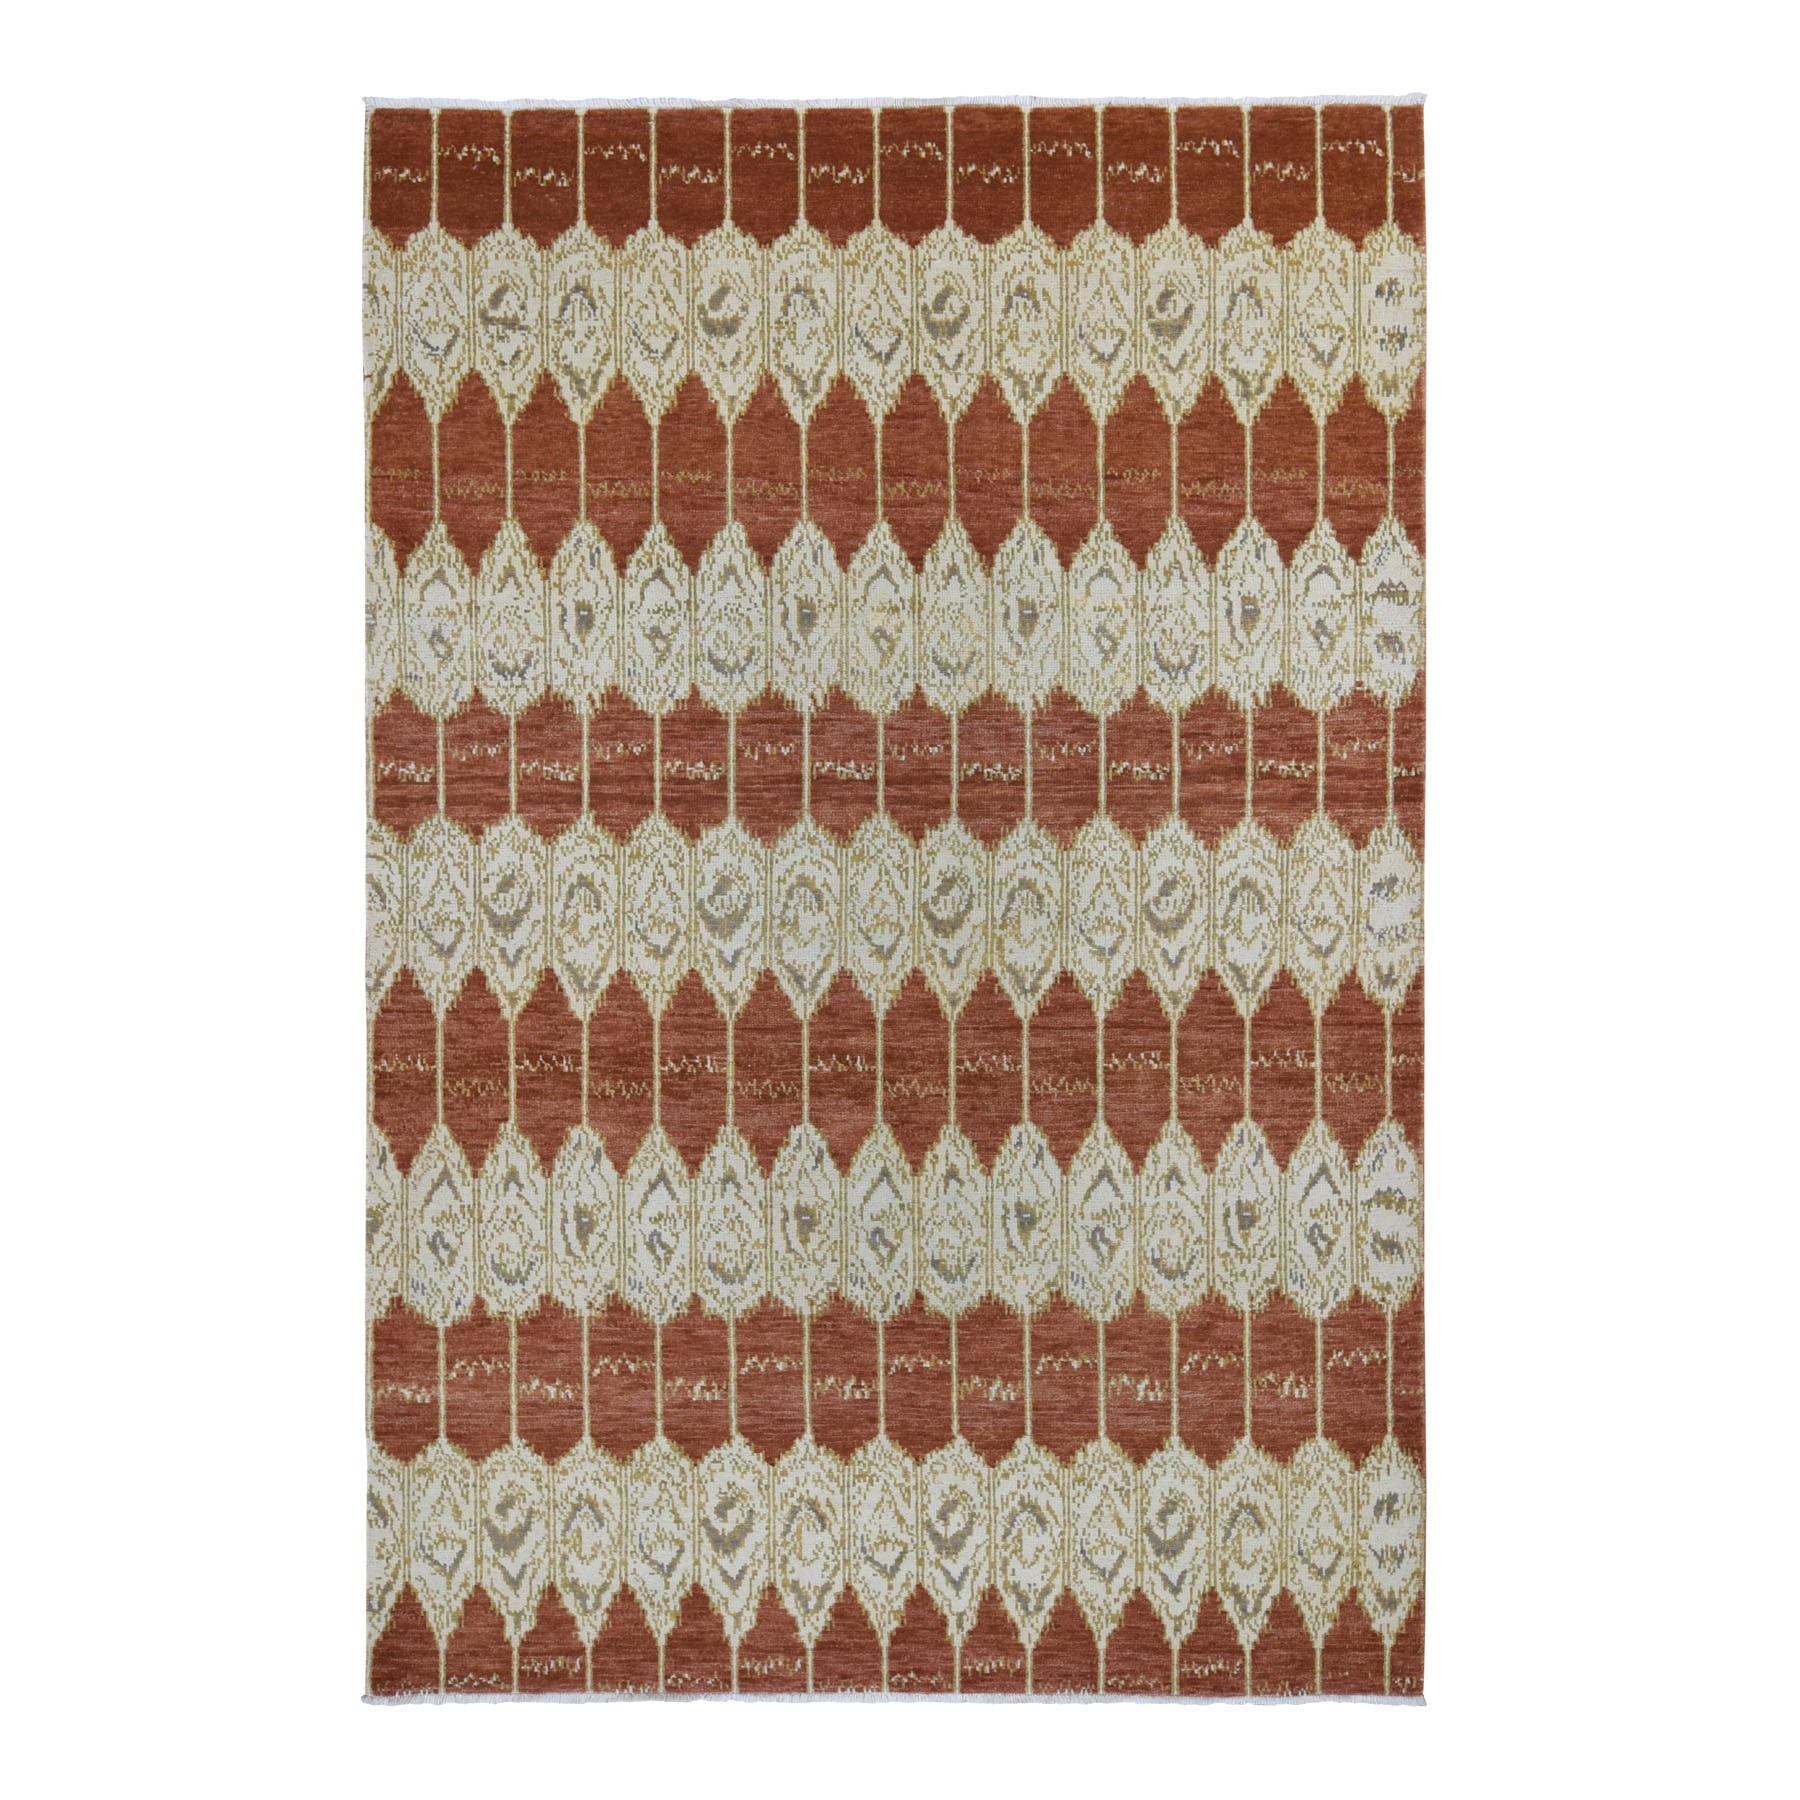 Eclectic and Bohemian Collection Hand Knotted Red Rug No: 1118220